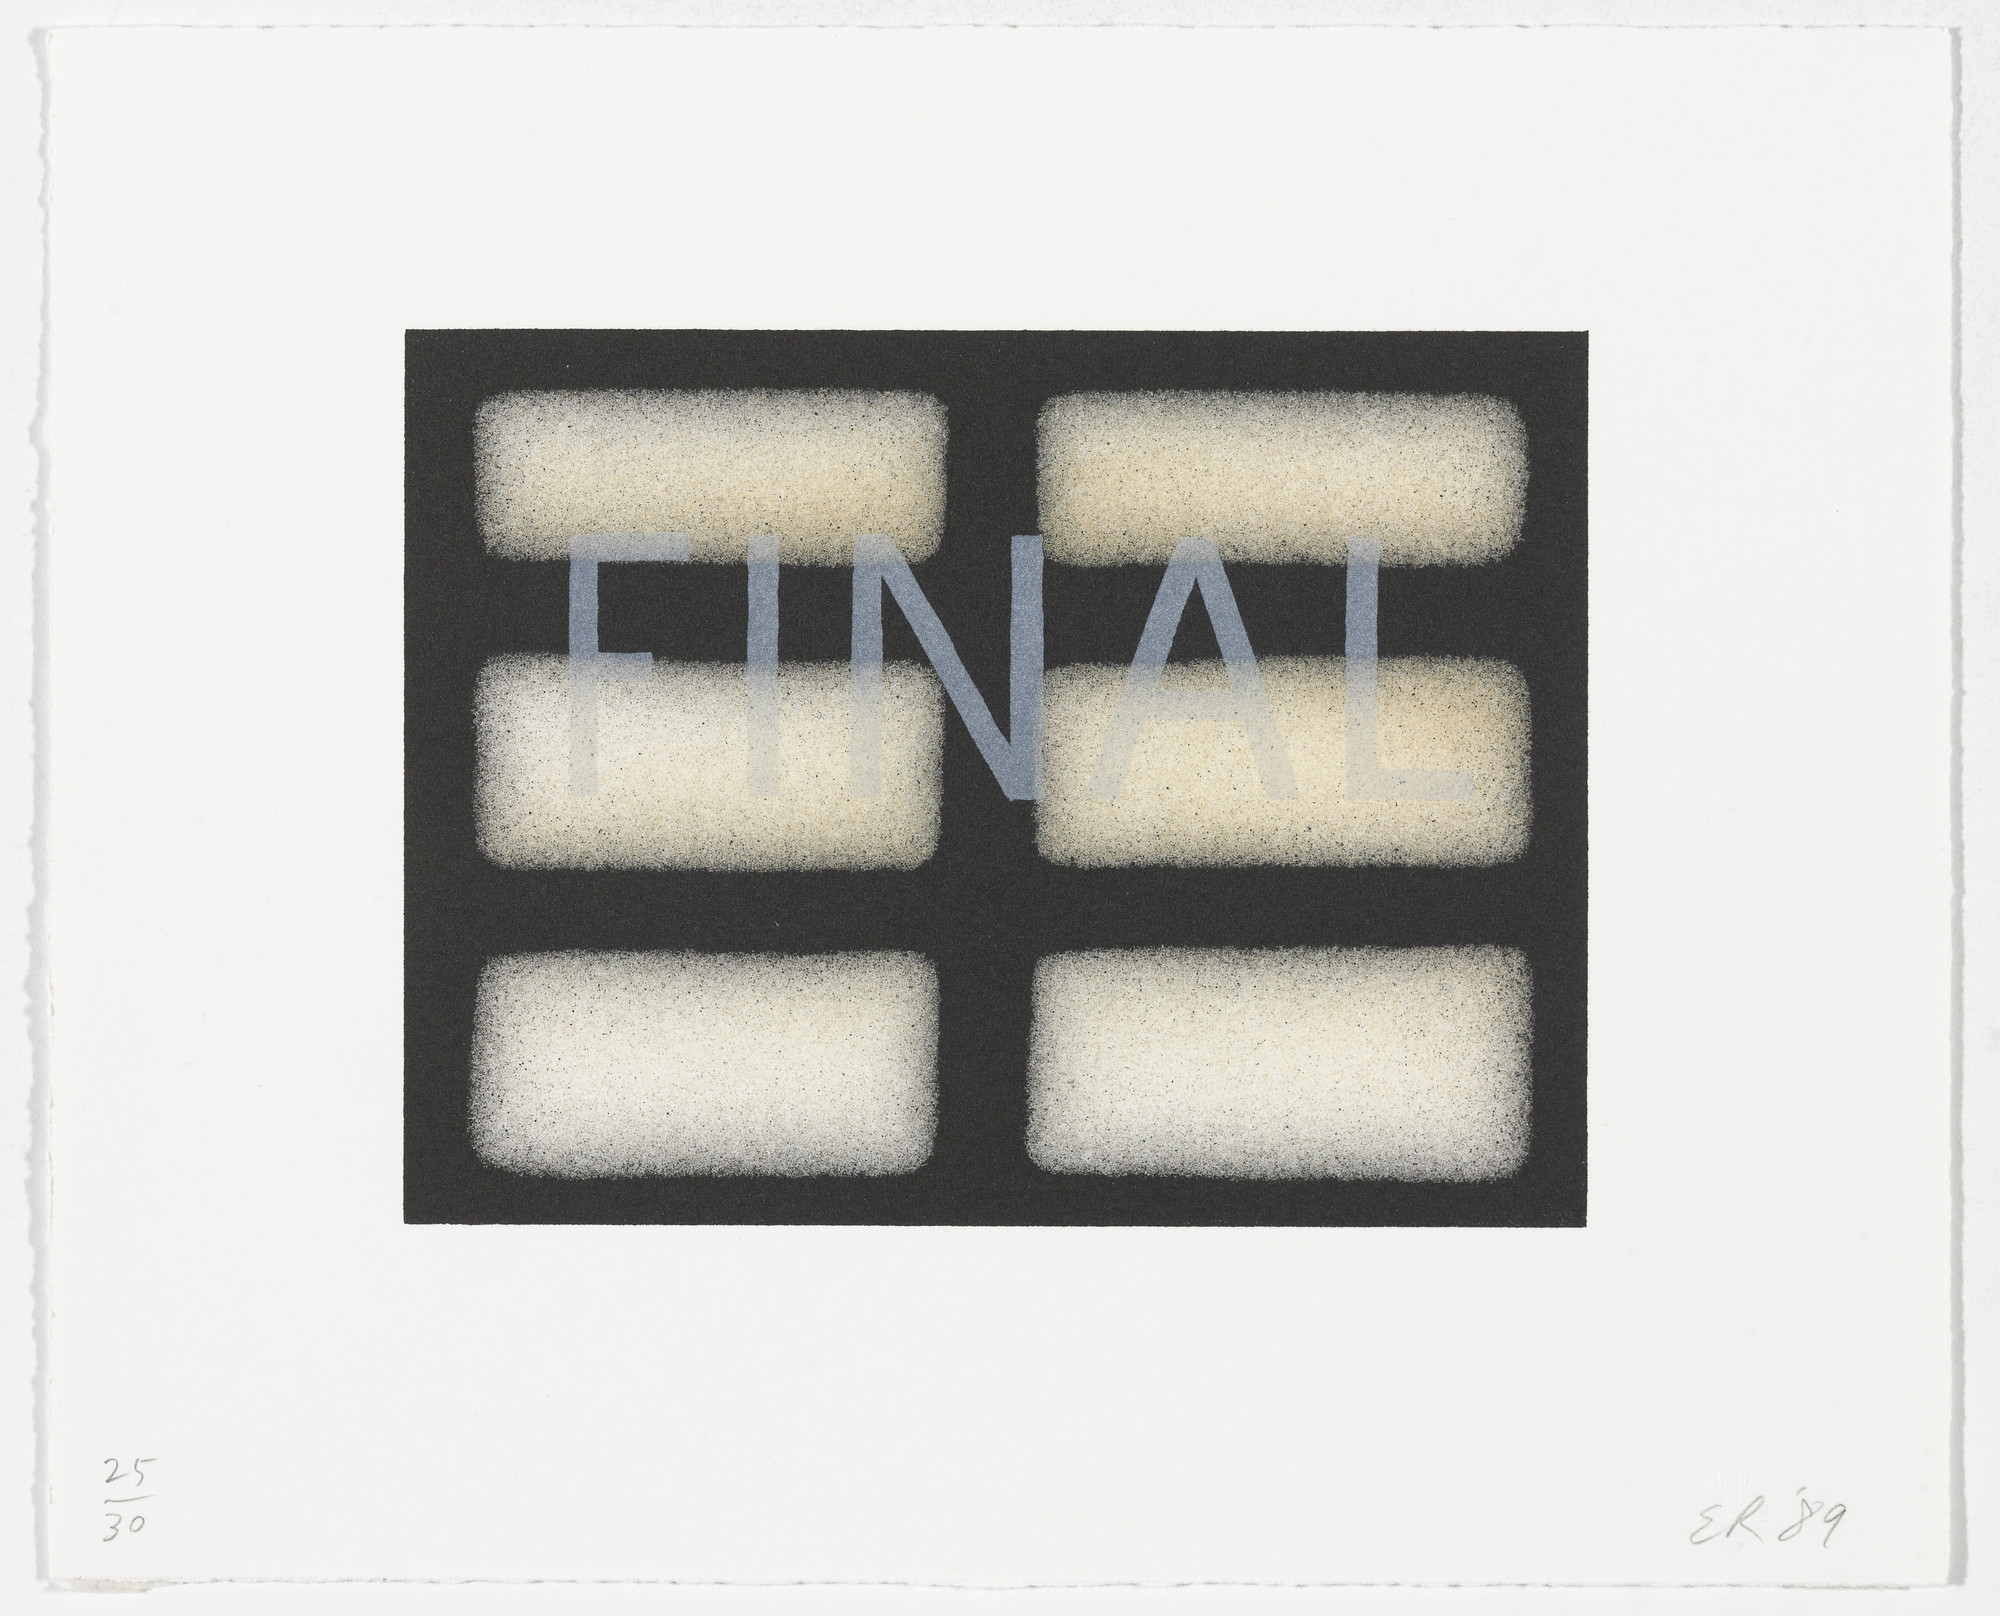 Edward Ruscha. Final from That Is Right And Other Similarities. 1989